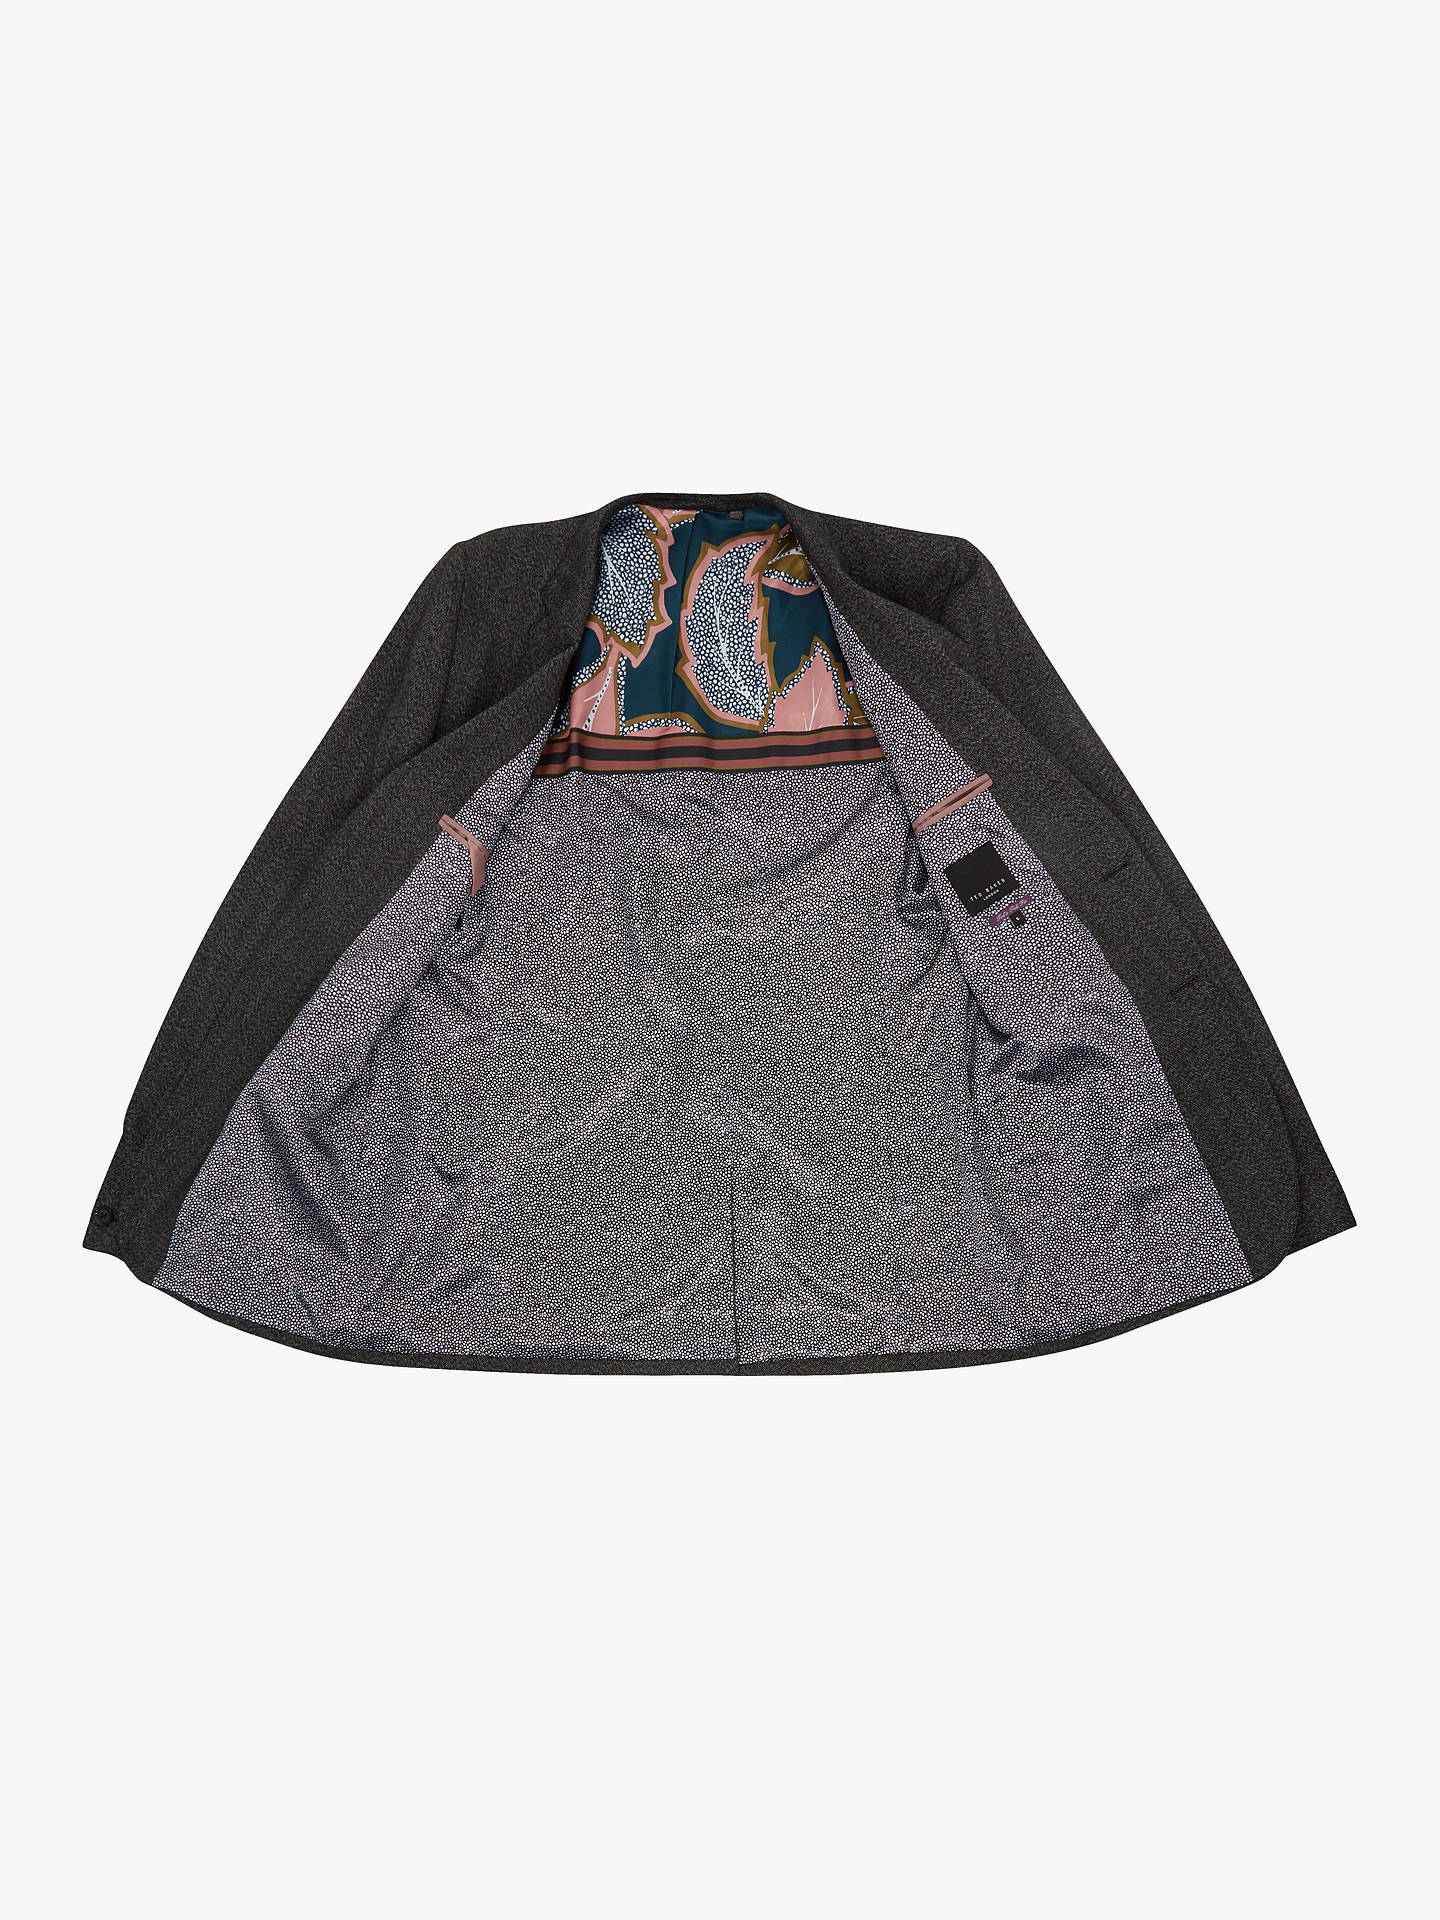 BuyTed Baker T for Tall Wensltt Jacket, Charcoal Grey, XL Online at johnlewis.com